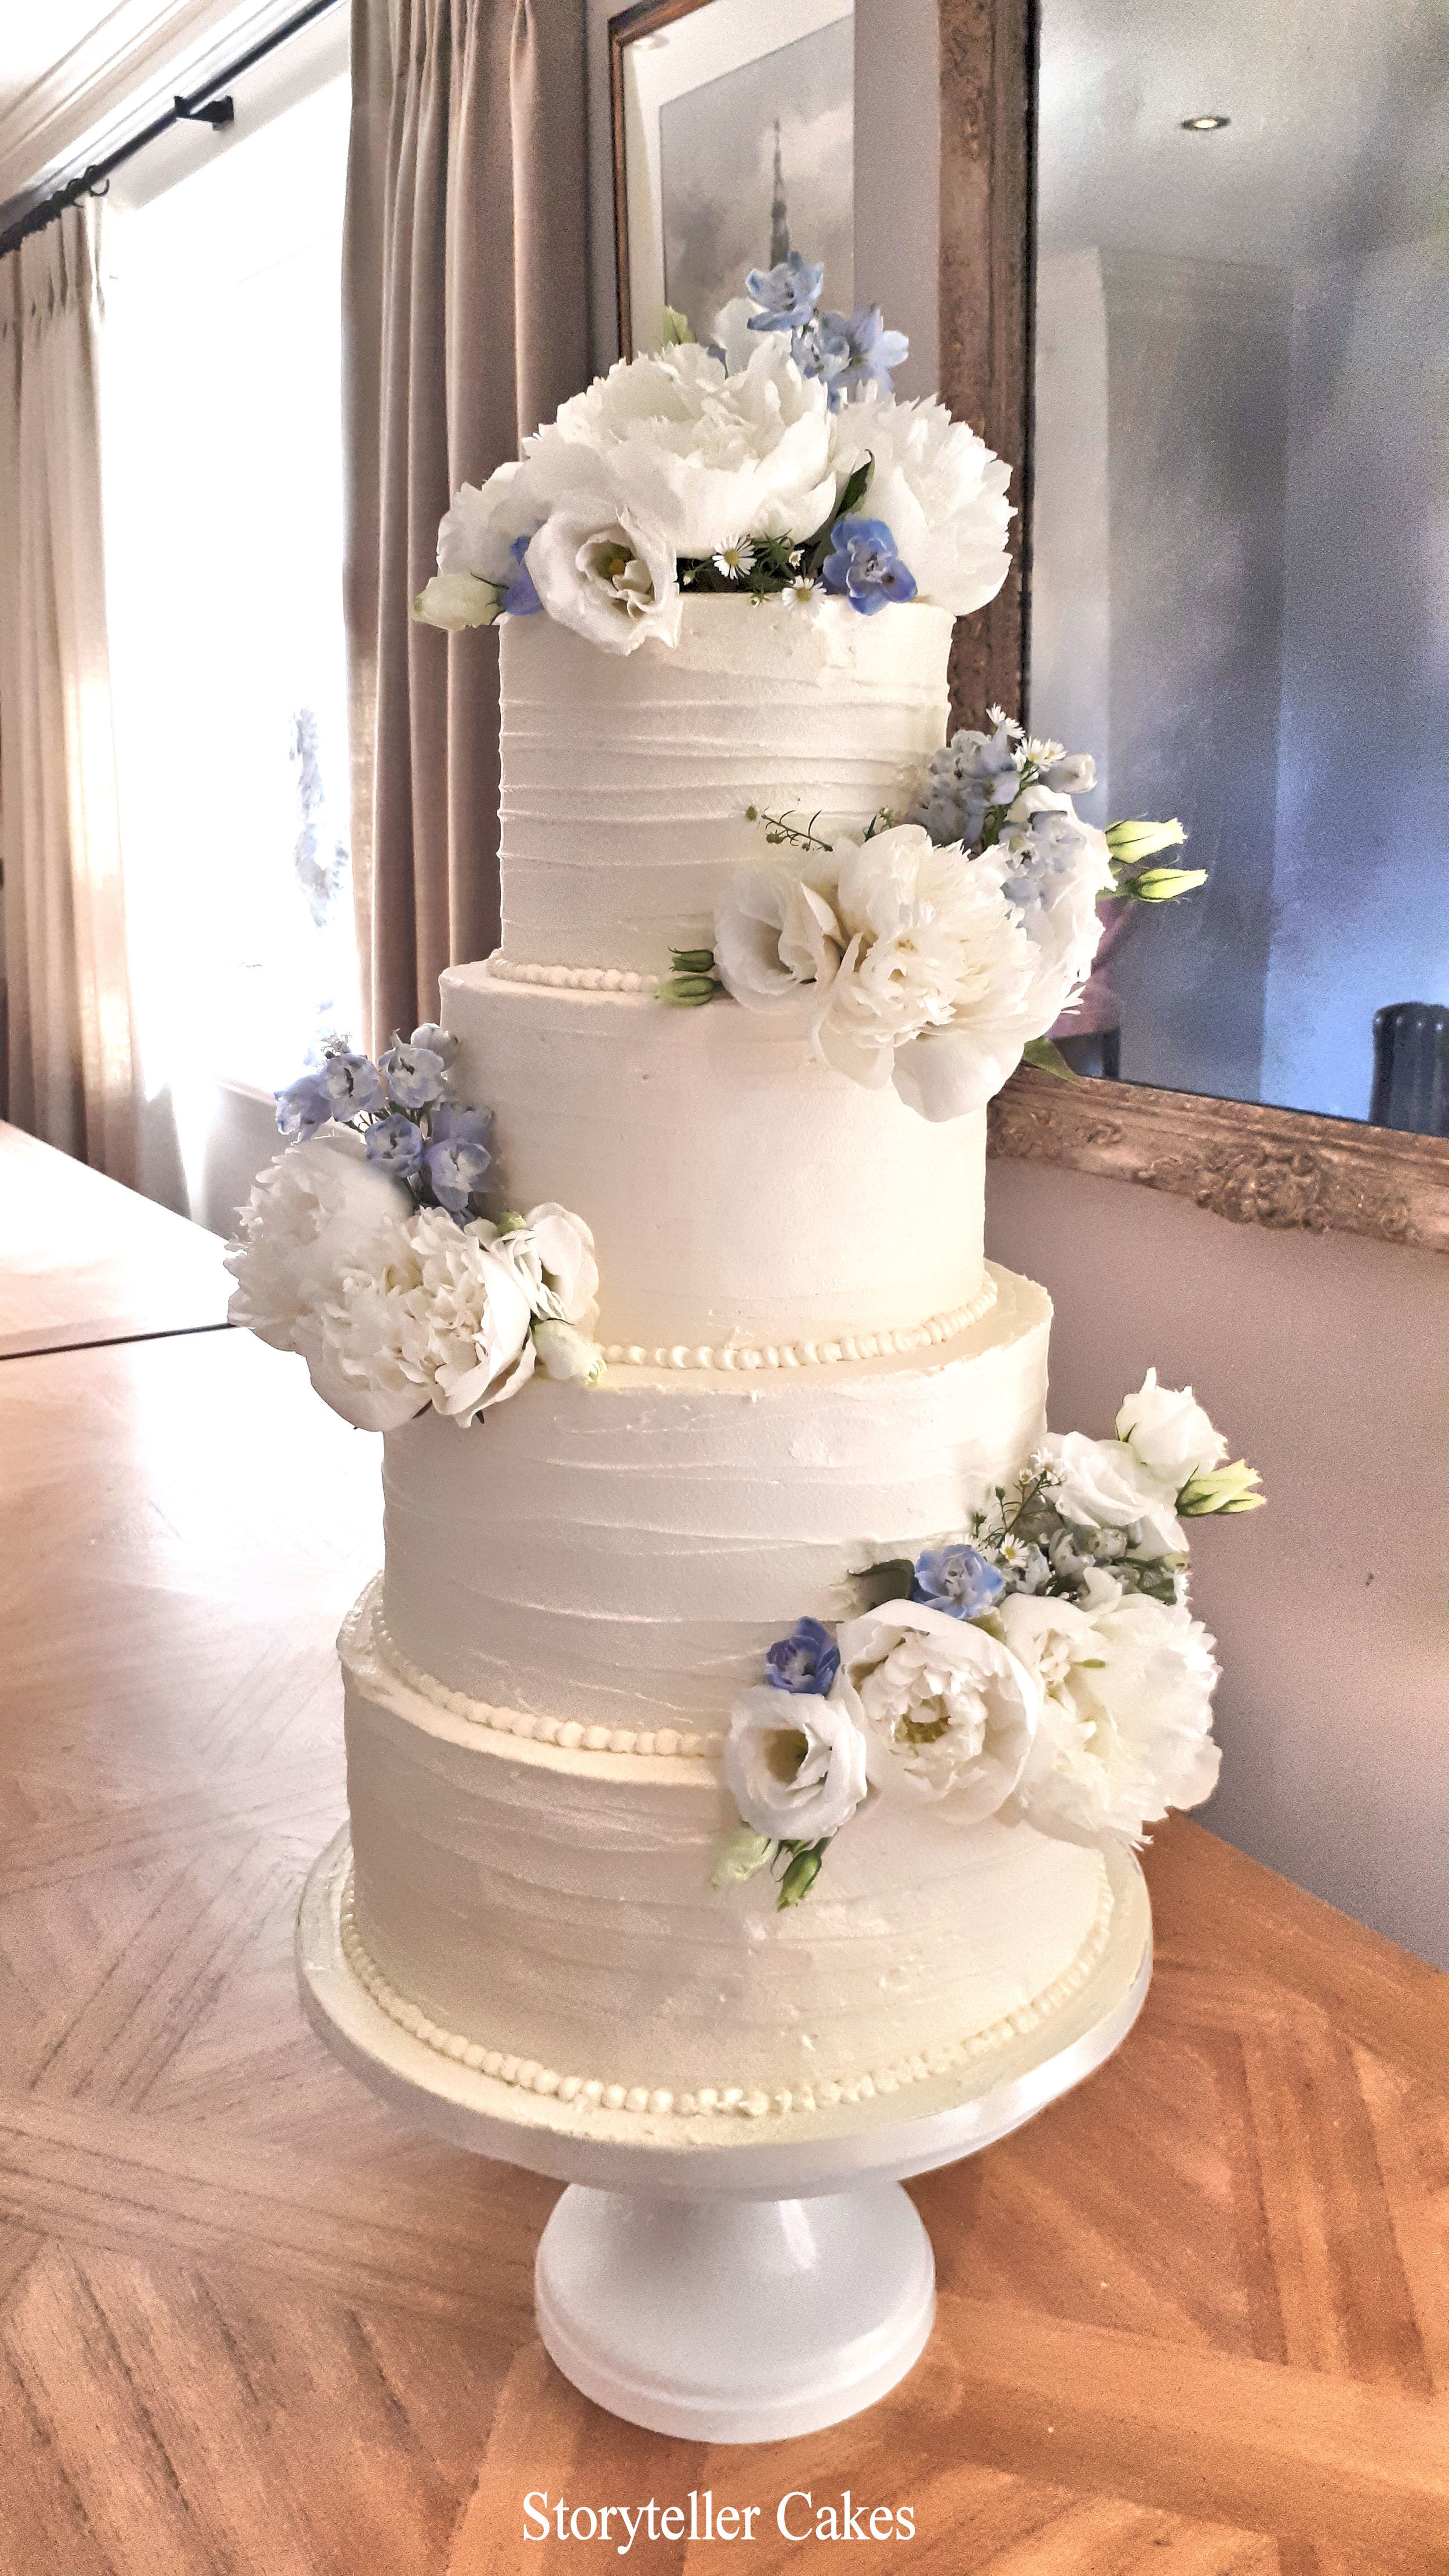 Beautiful Buttercream Ruffle and peony wedding cake3.jpg